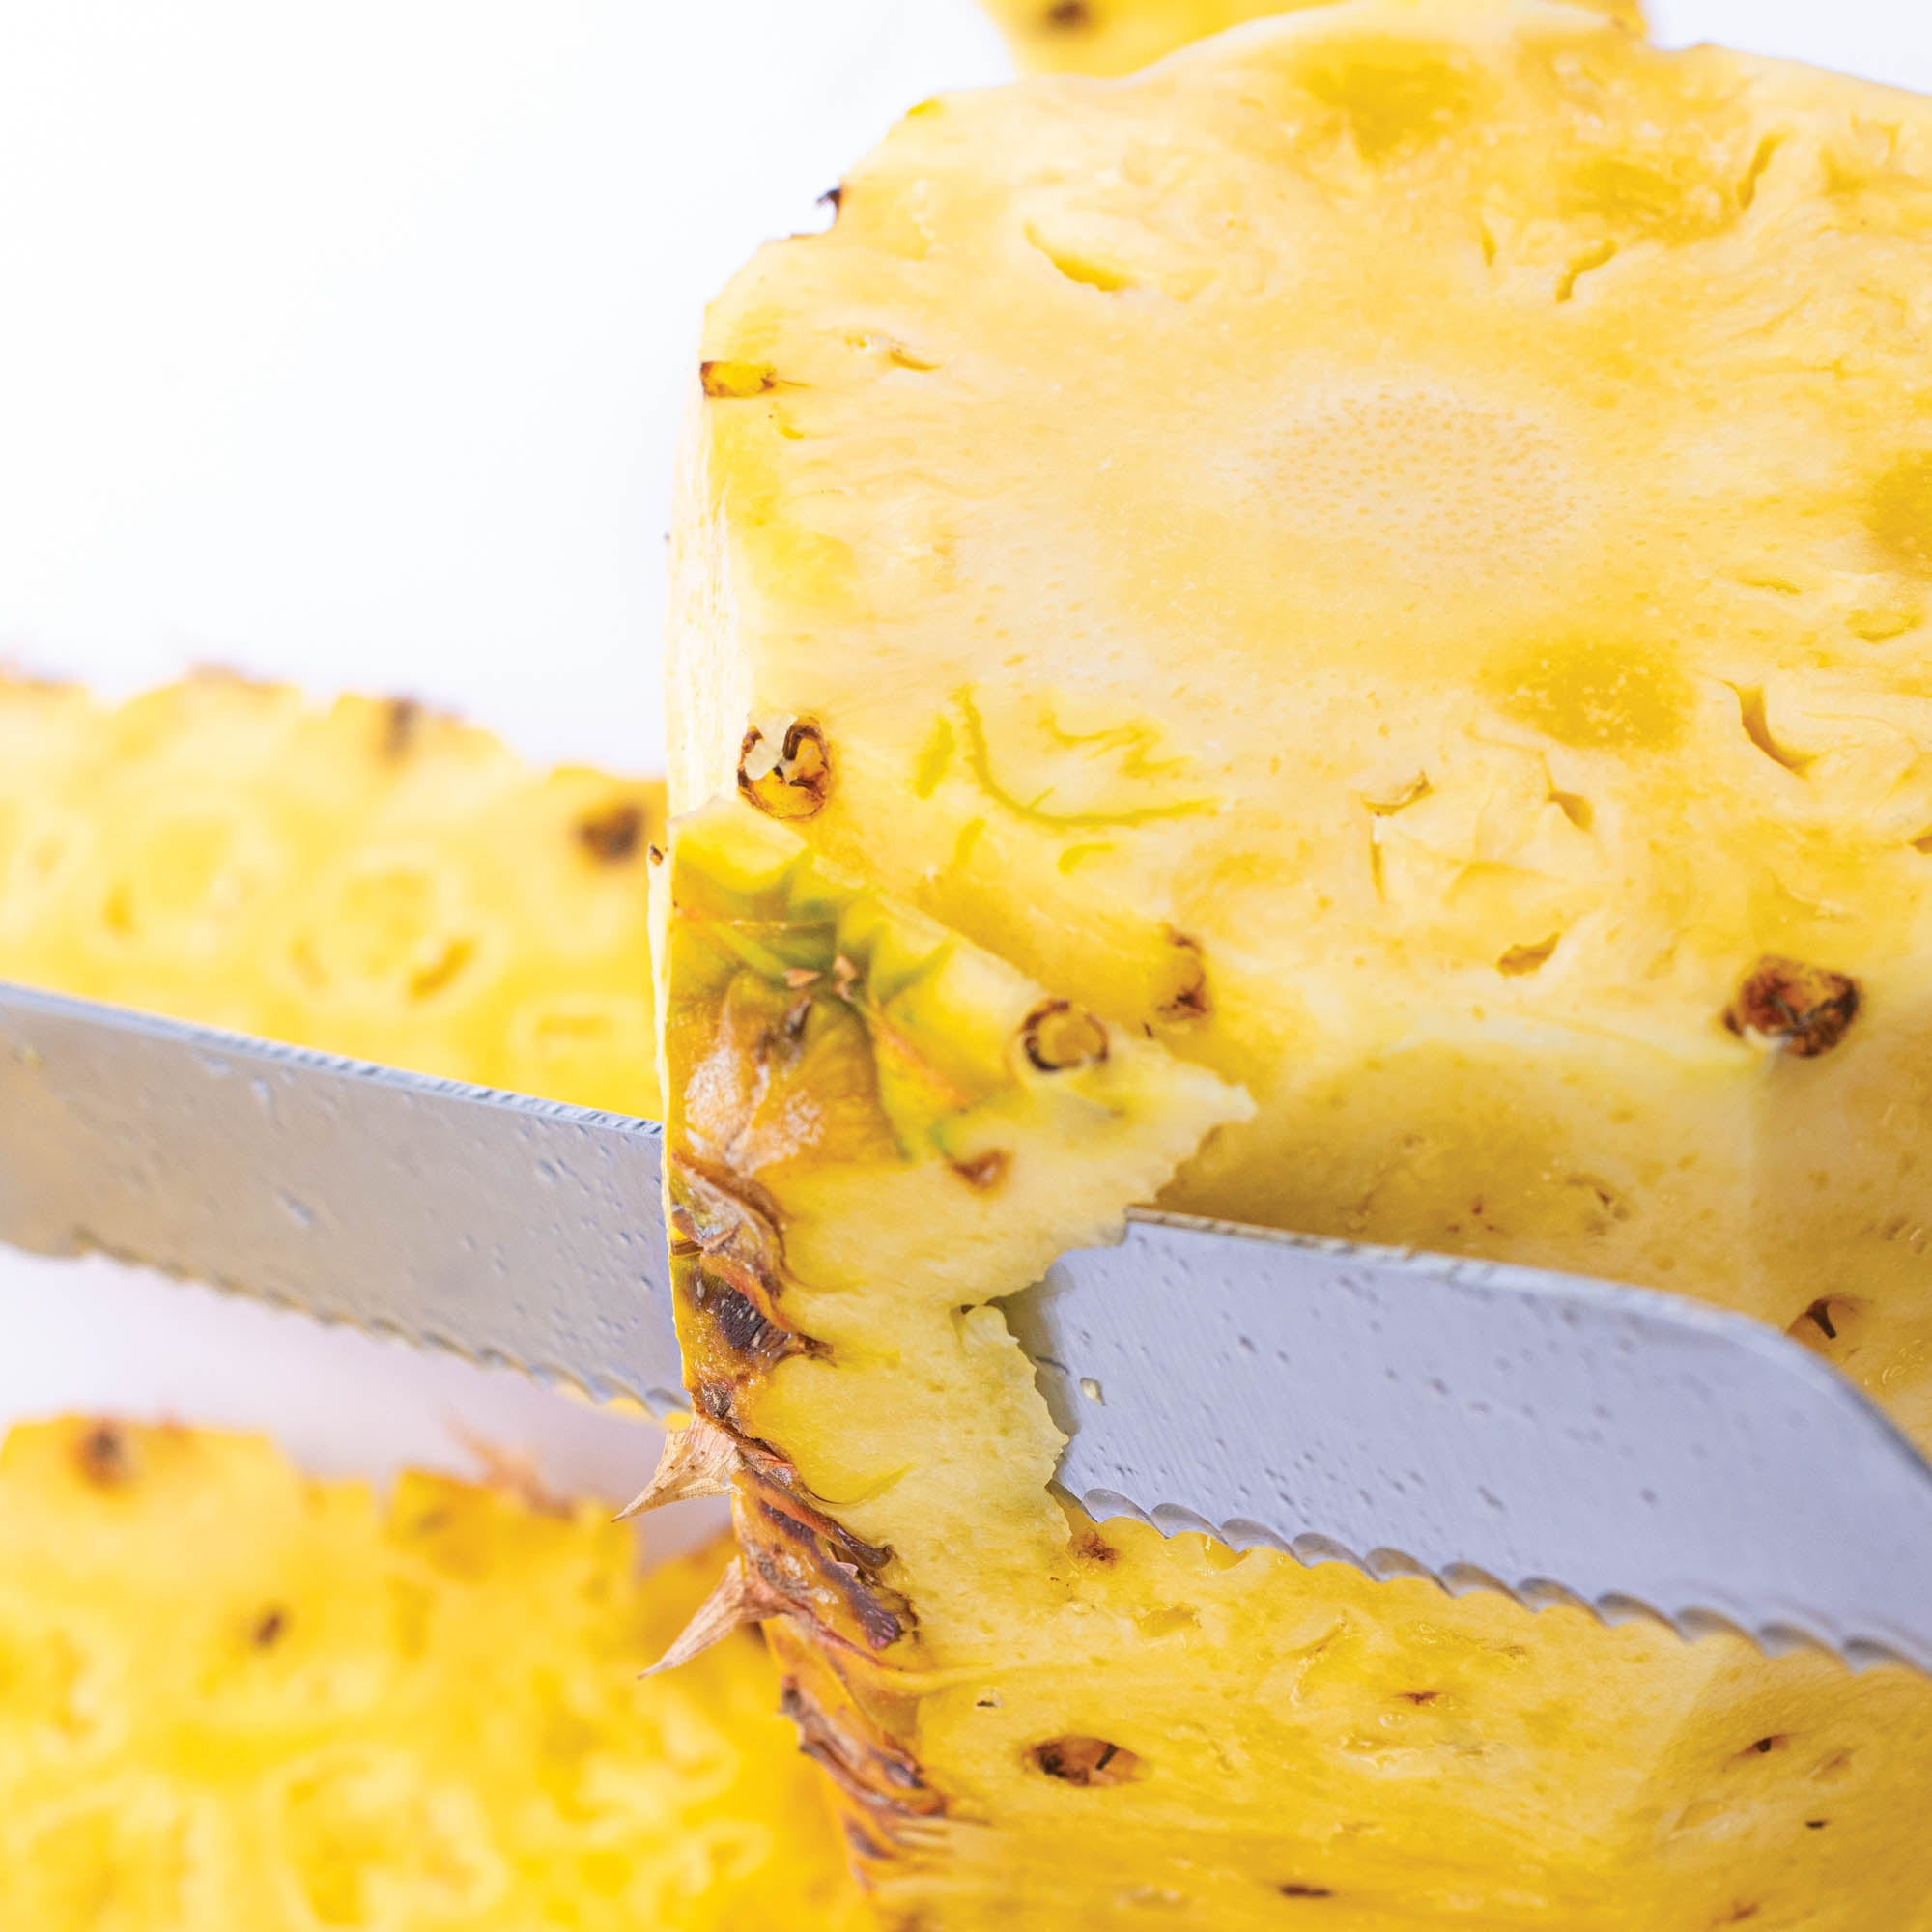 Cutting rind off pineapple